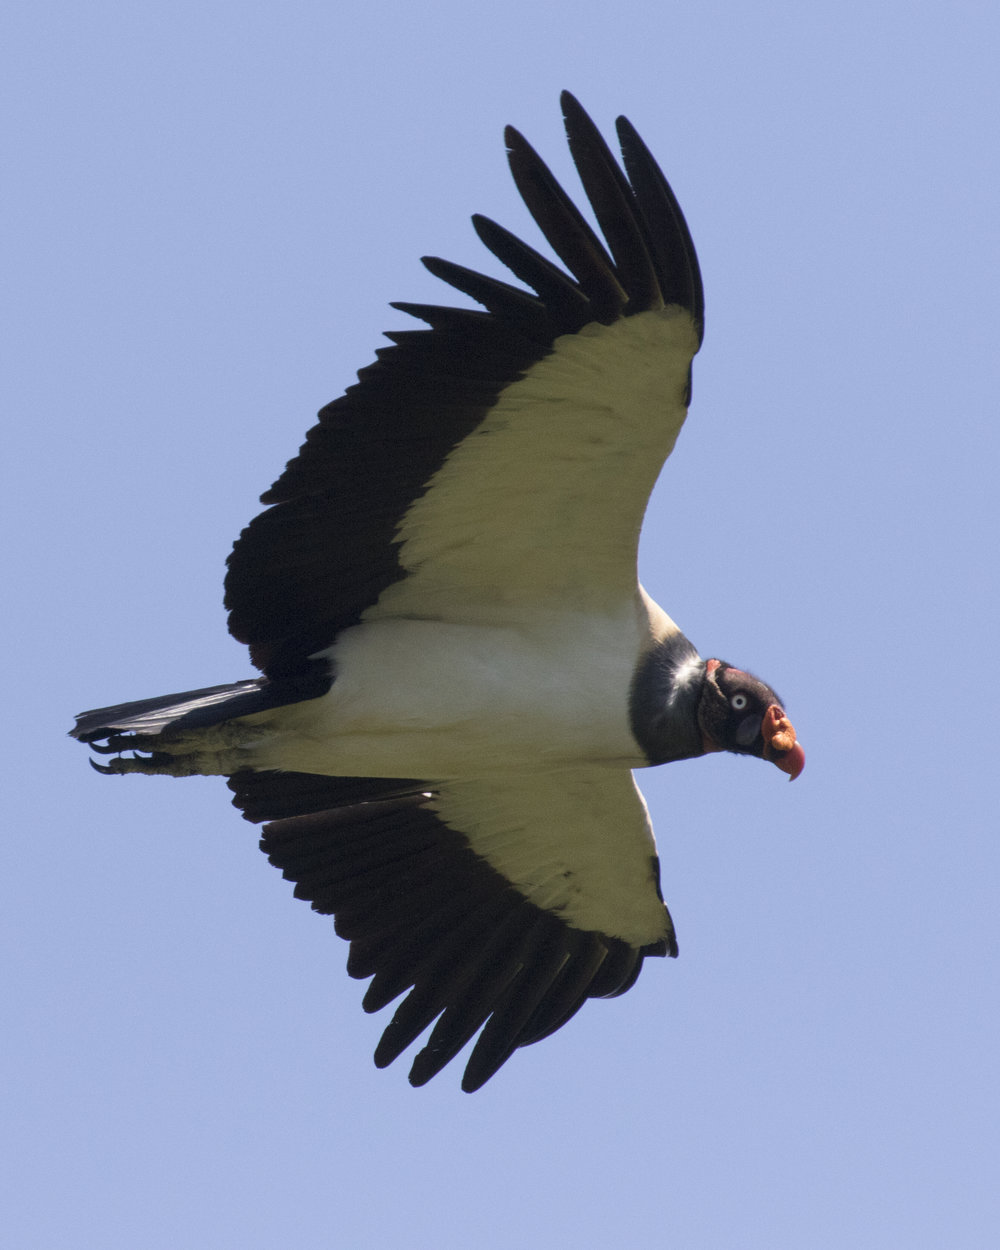 King Vulture at Mountain Pine Ridge, Belize